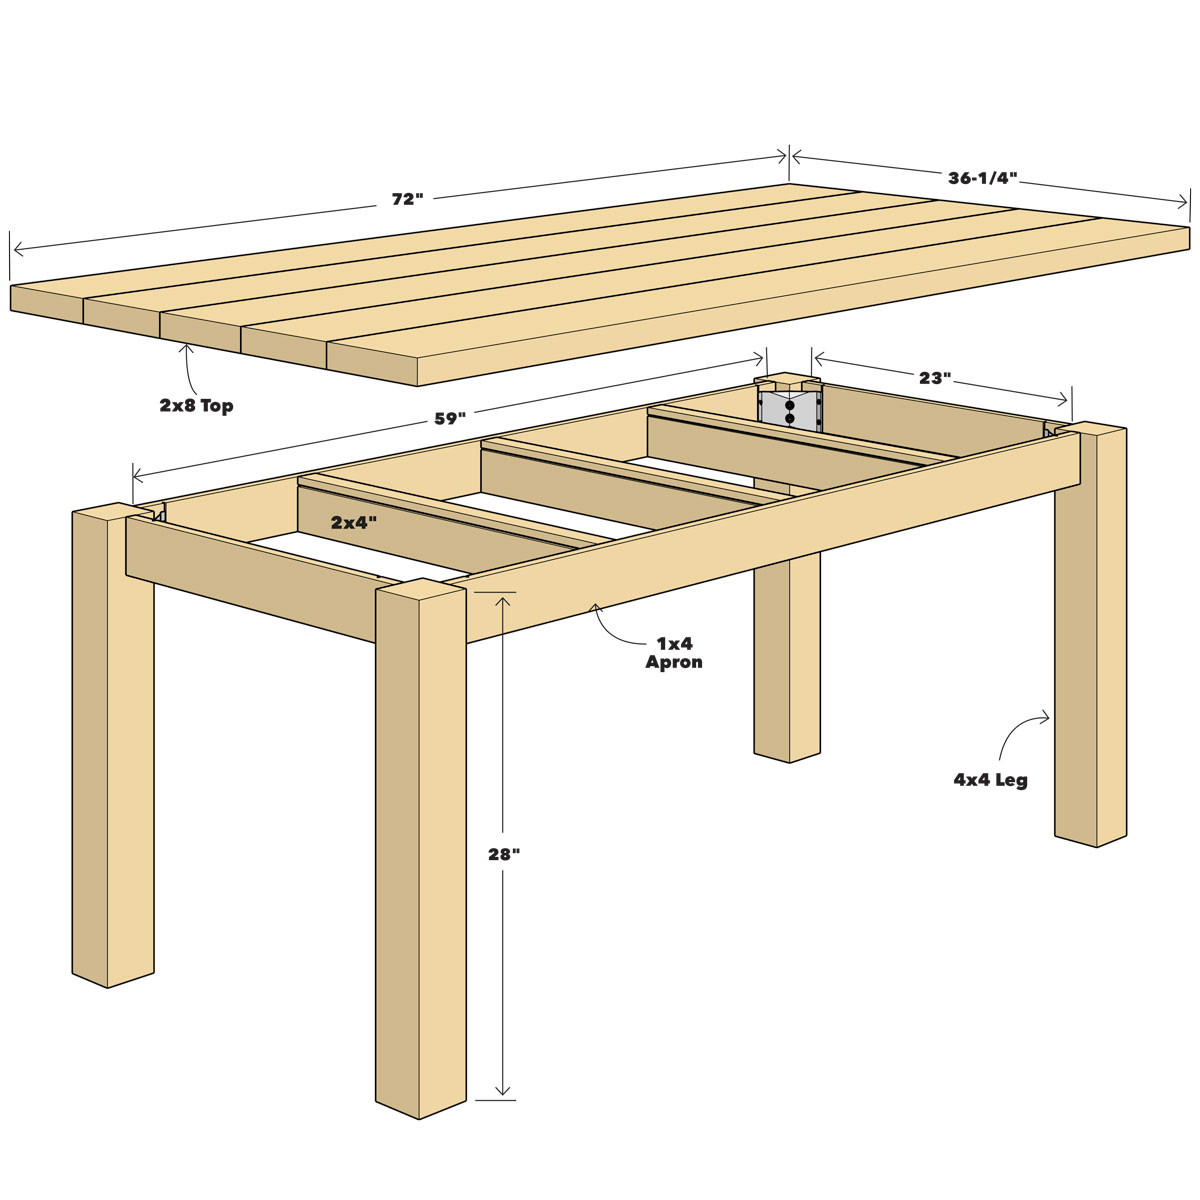 DIY Outdoor Wooden Table  Build a Simple Reclaimed Wood Table